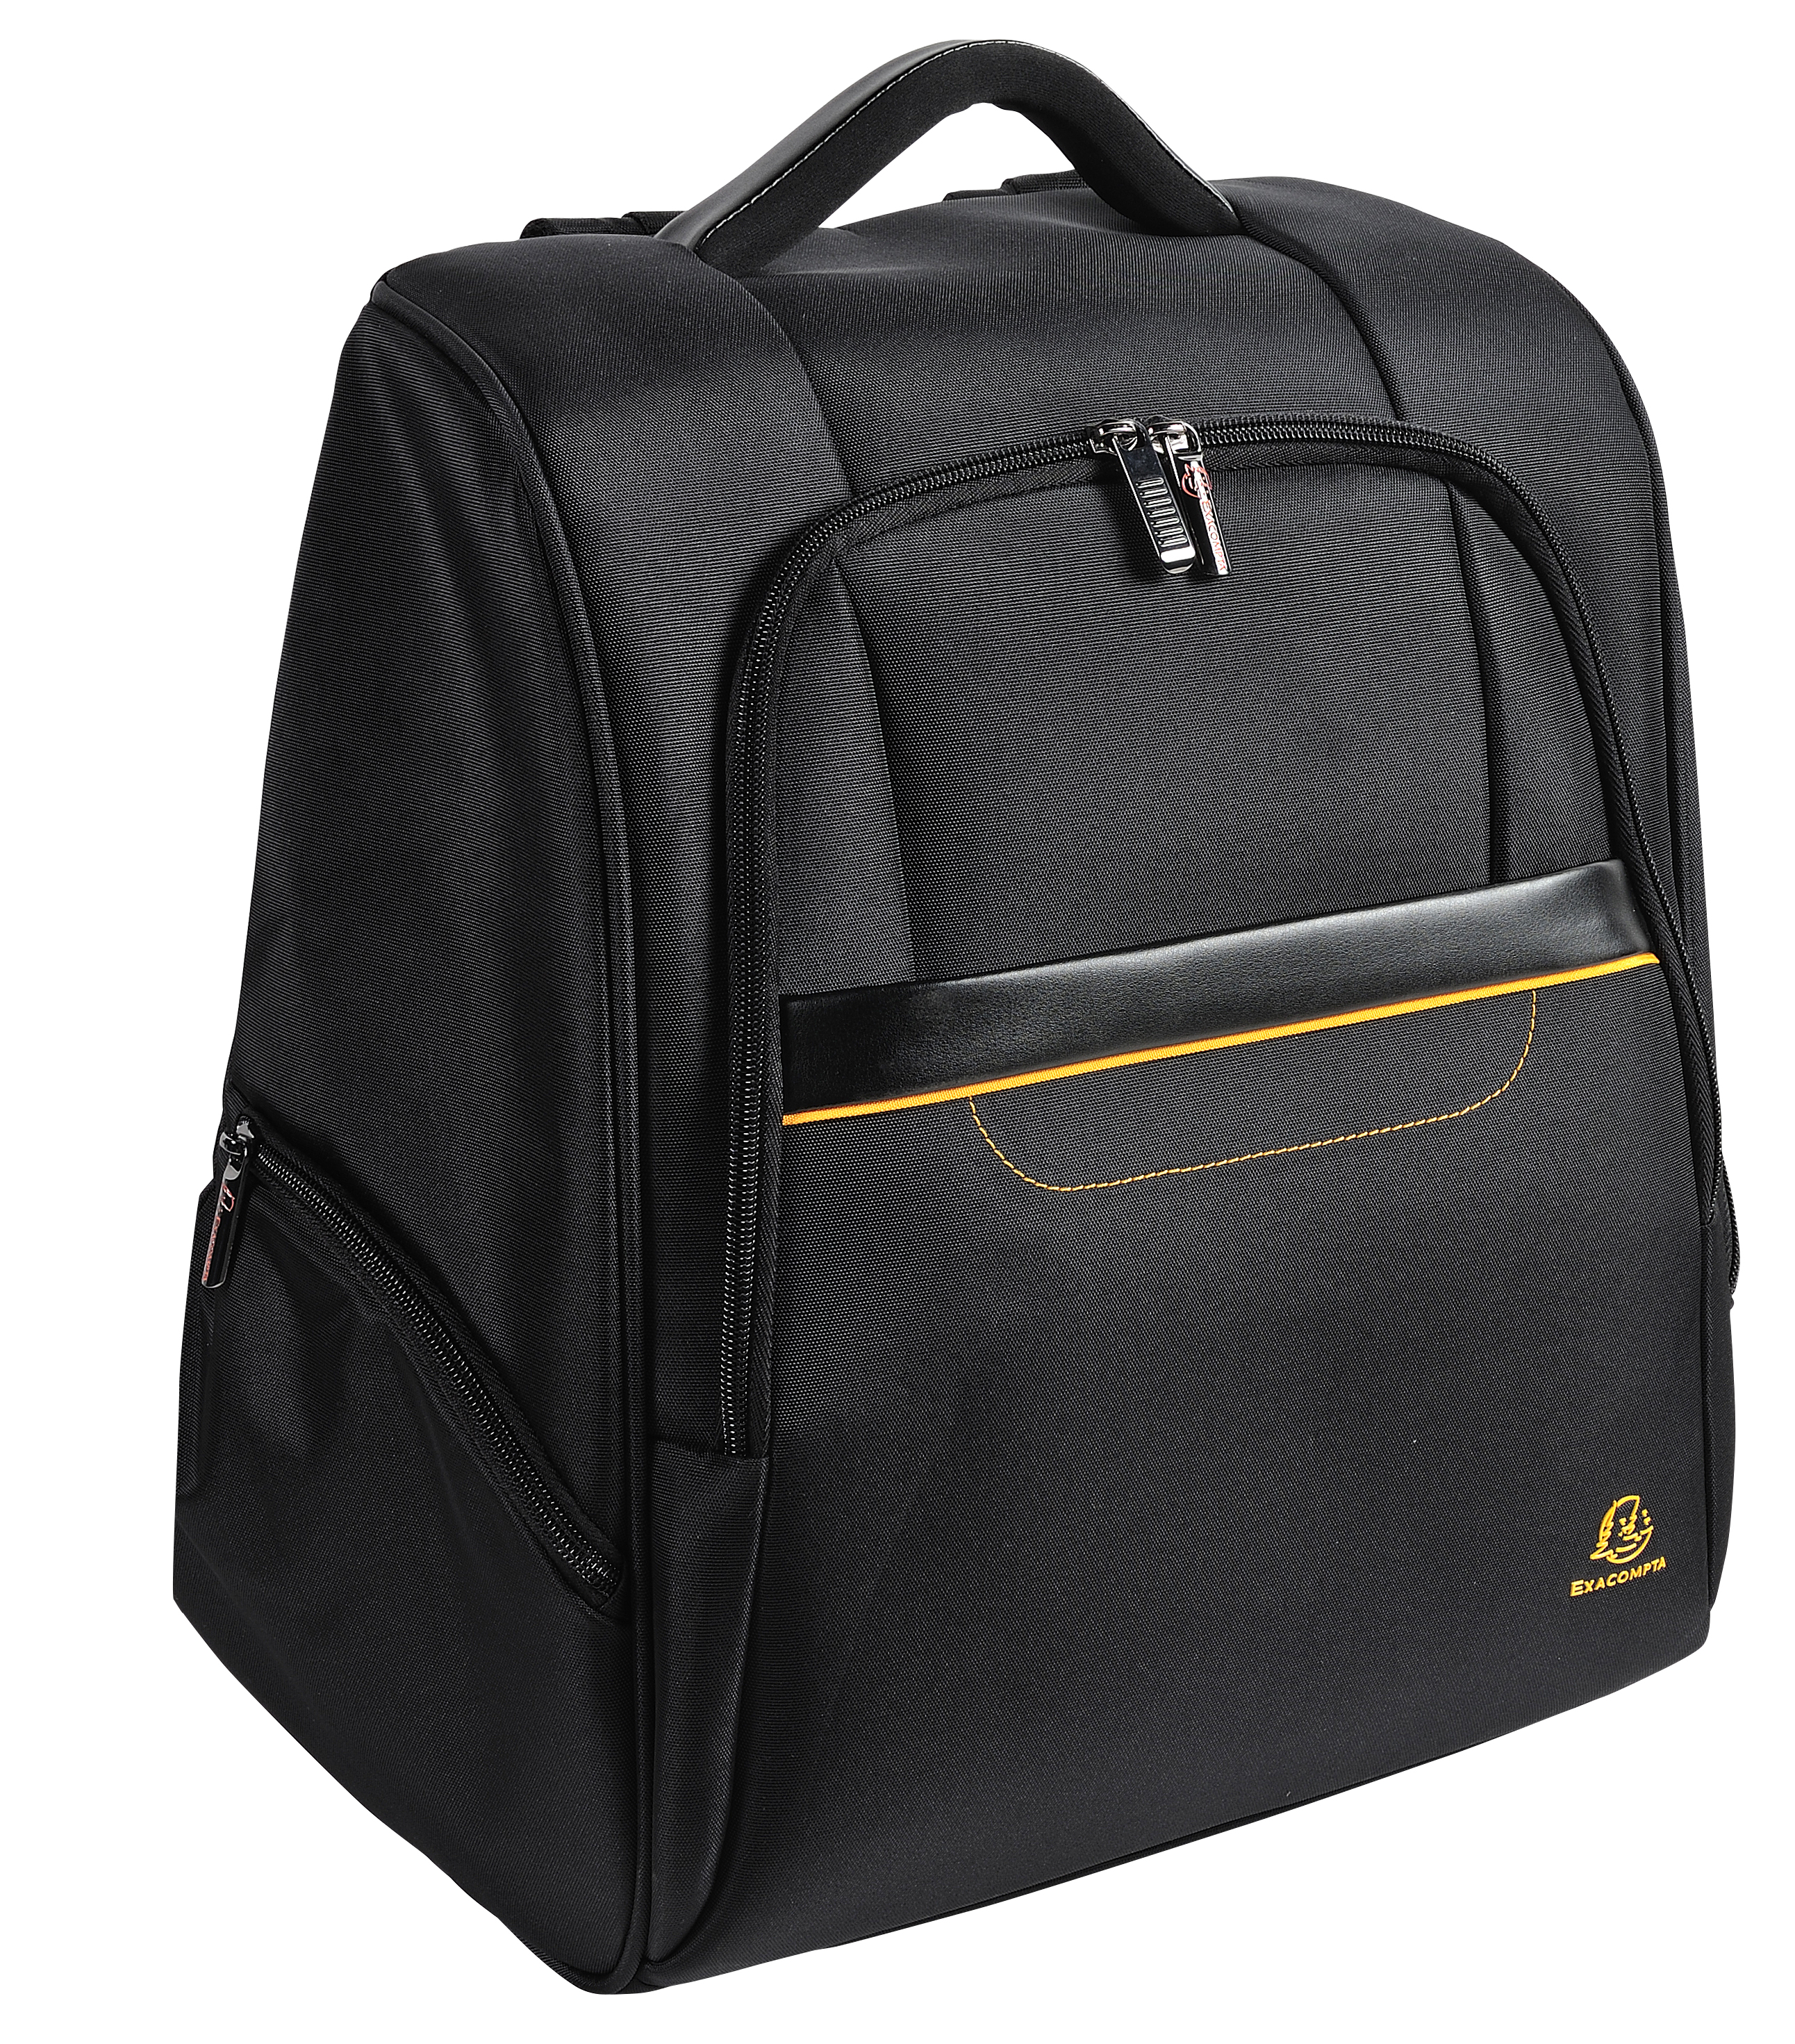 Briefcases & Luggage Exactive Laptop Backpack